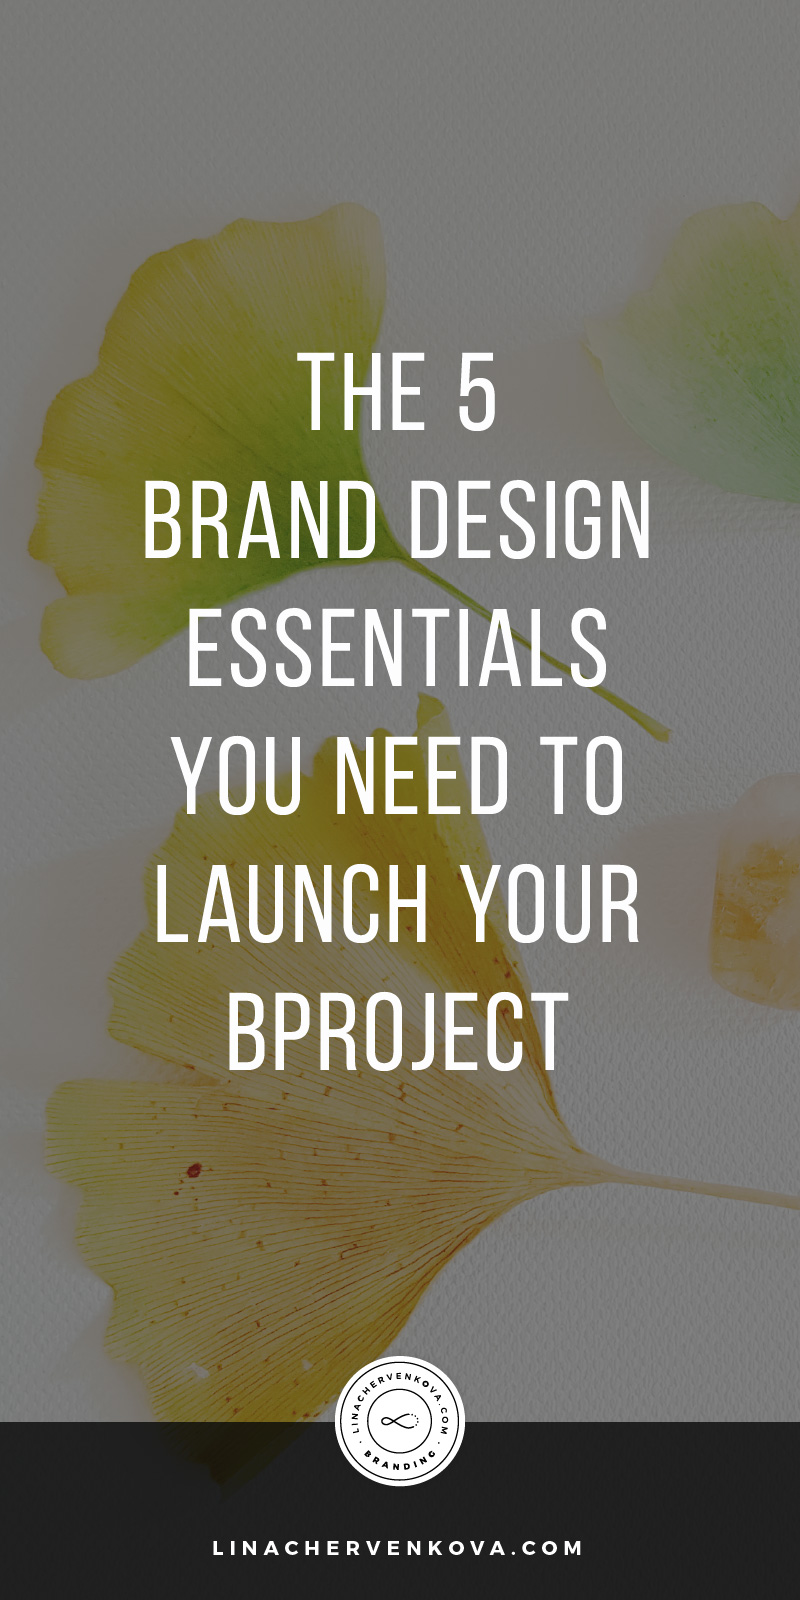 The-5-Brand-Design-Essentials-You-Need-to-Launch-Your-Project---pin5.jpg